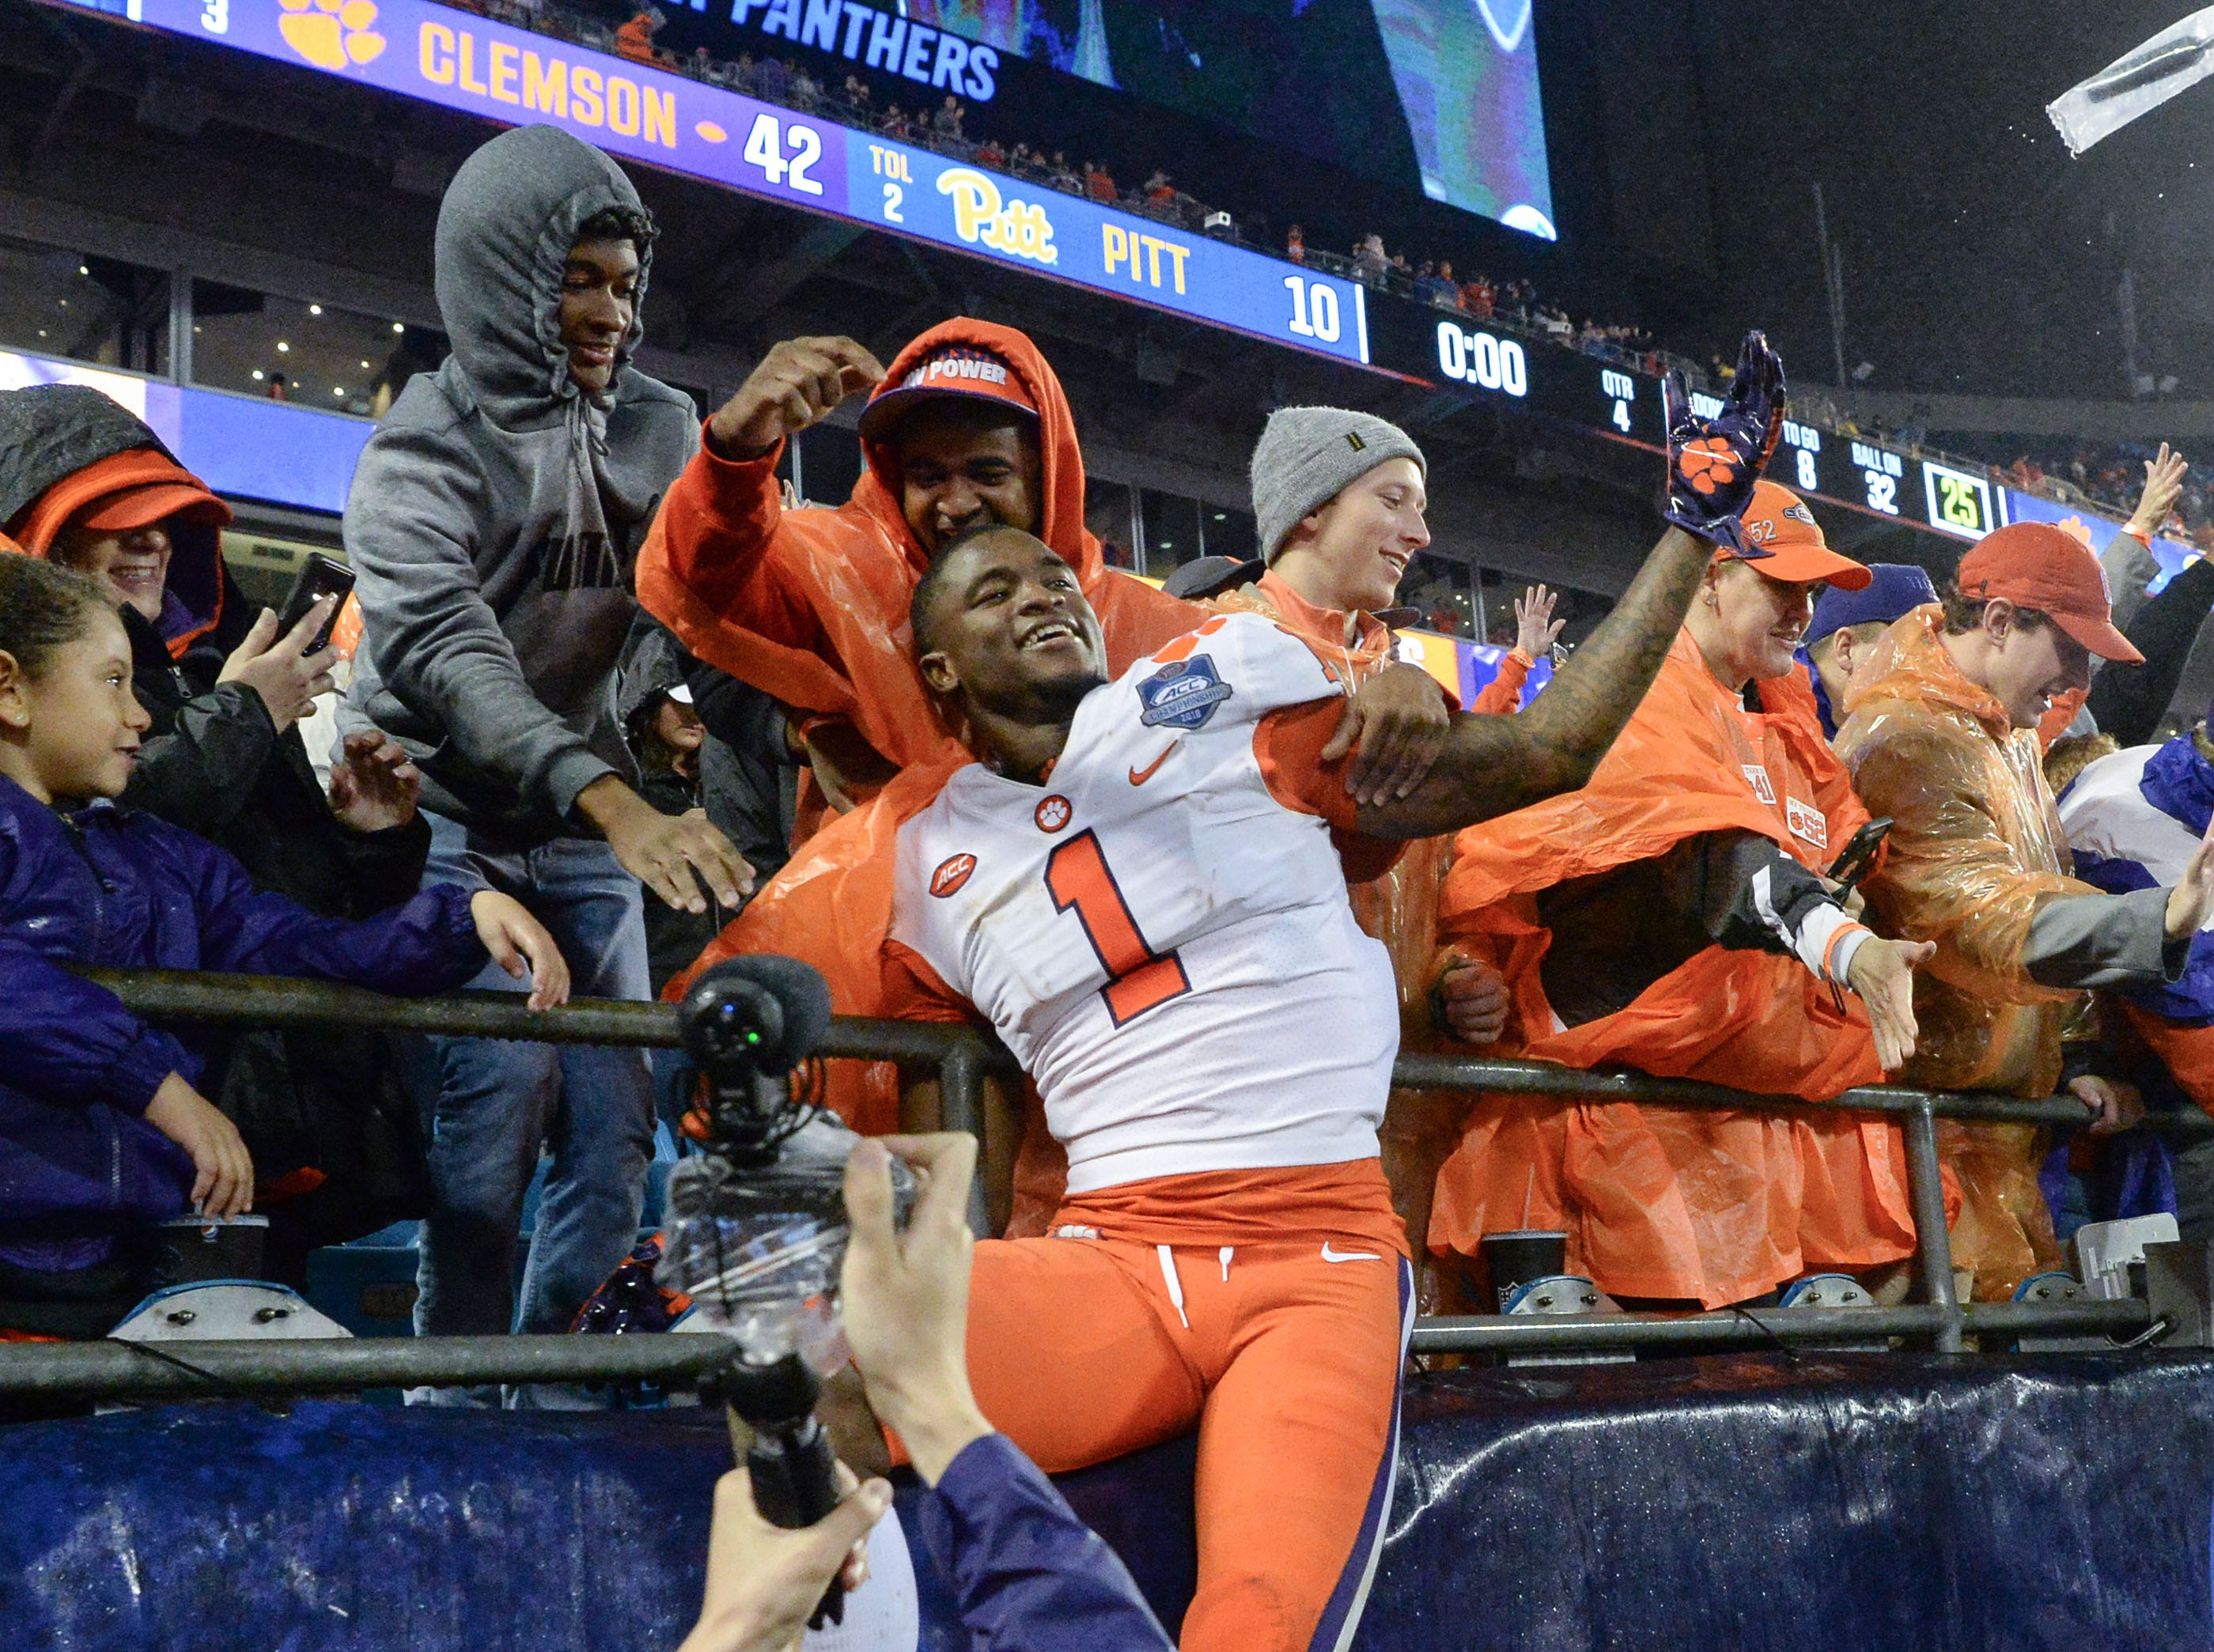 Clemson cornerback Trayvon Mullen (1) celebrates with fans a 42-10 win over Pittsburgh after the game at the Dr. Pepper ACC football championship at Bank of America Stadium in Charlotte, N.C. on Saturday, December 1, 2018.